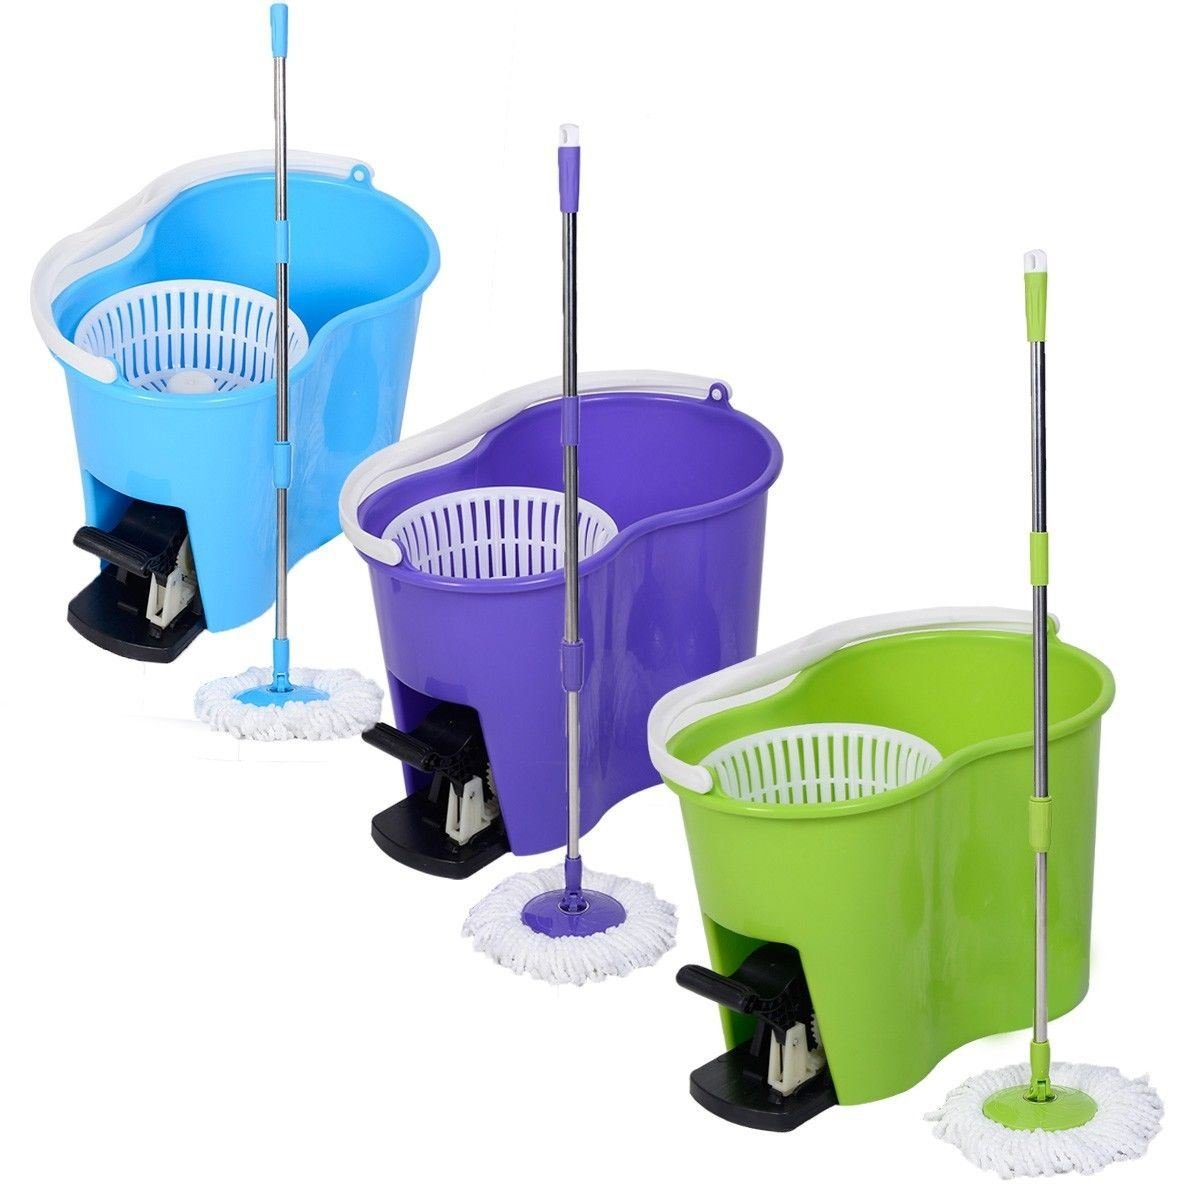 360 Degree Spin Mop and Bucket Set with FREE 2 mop